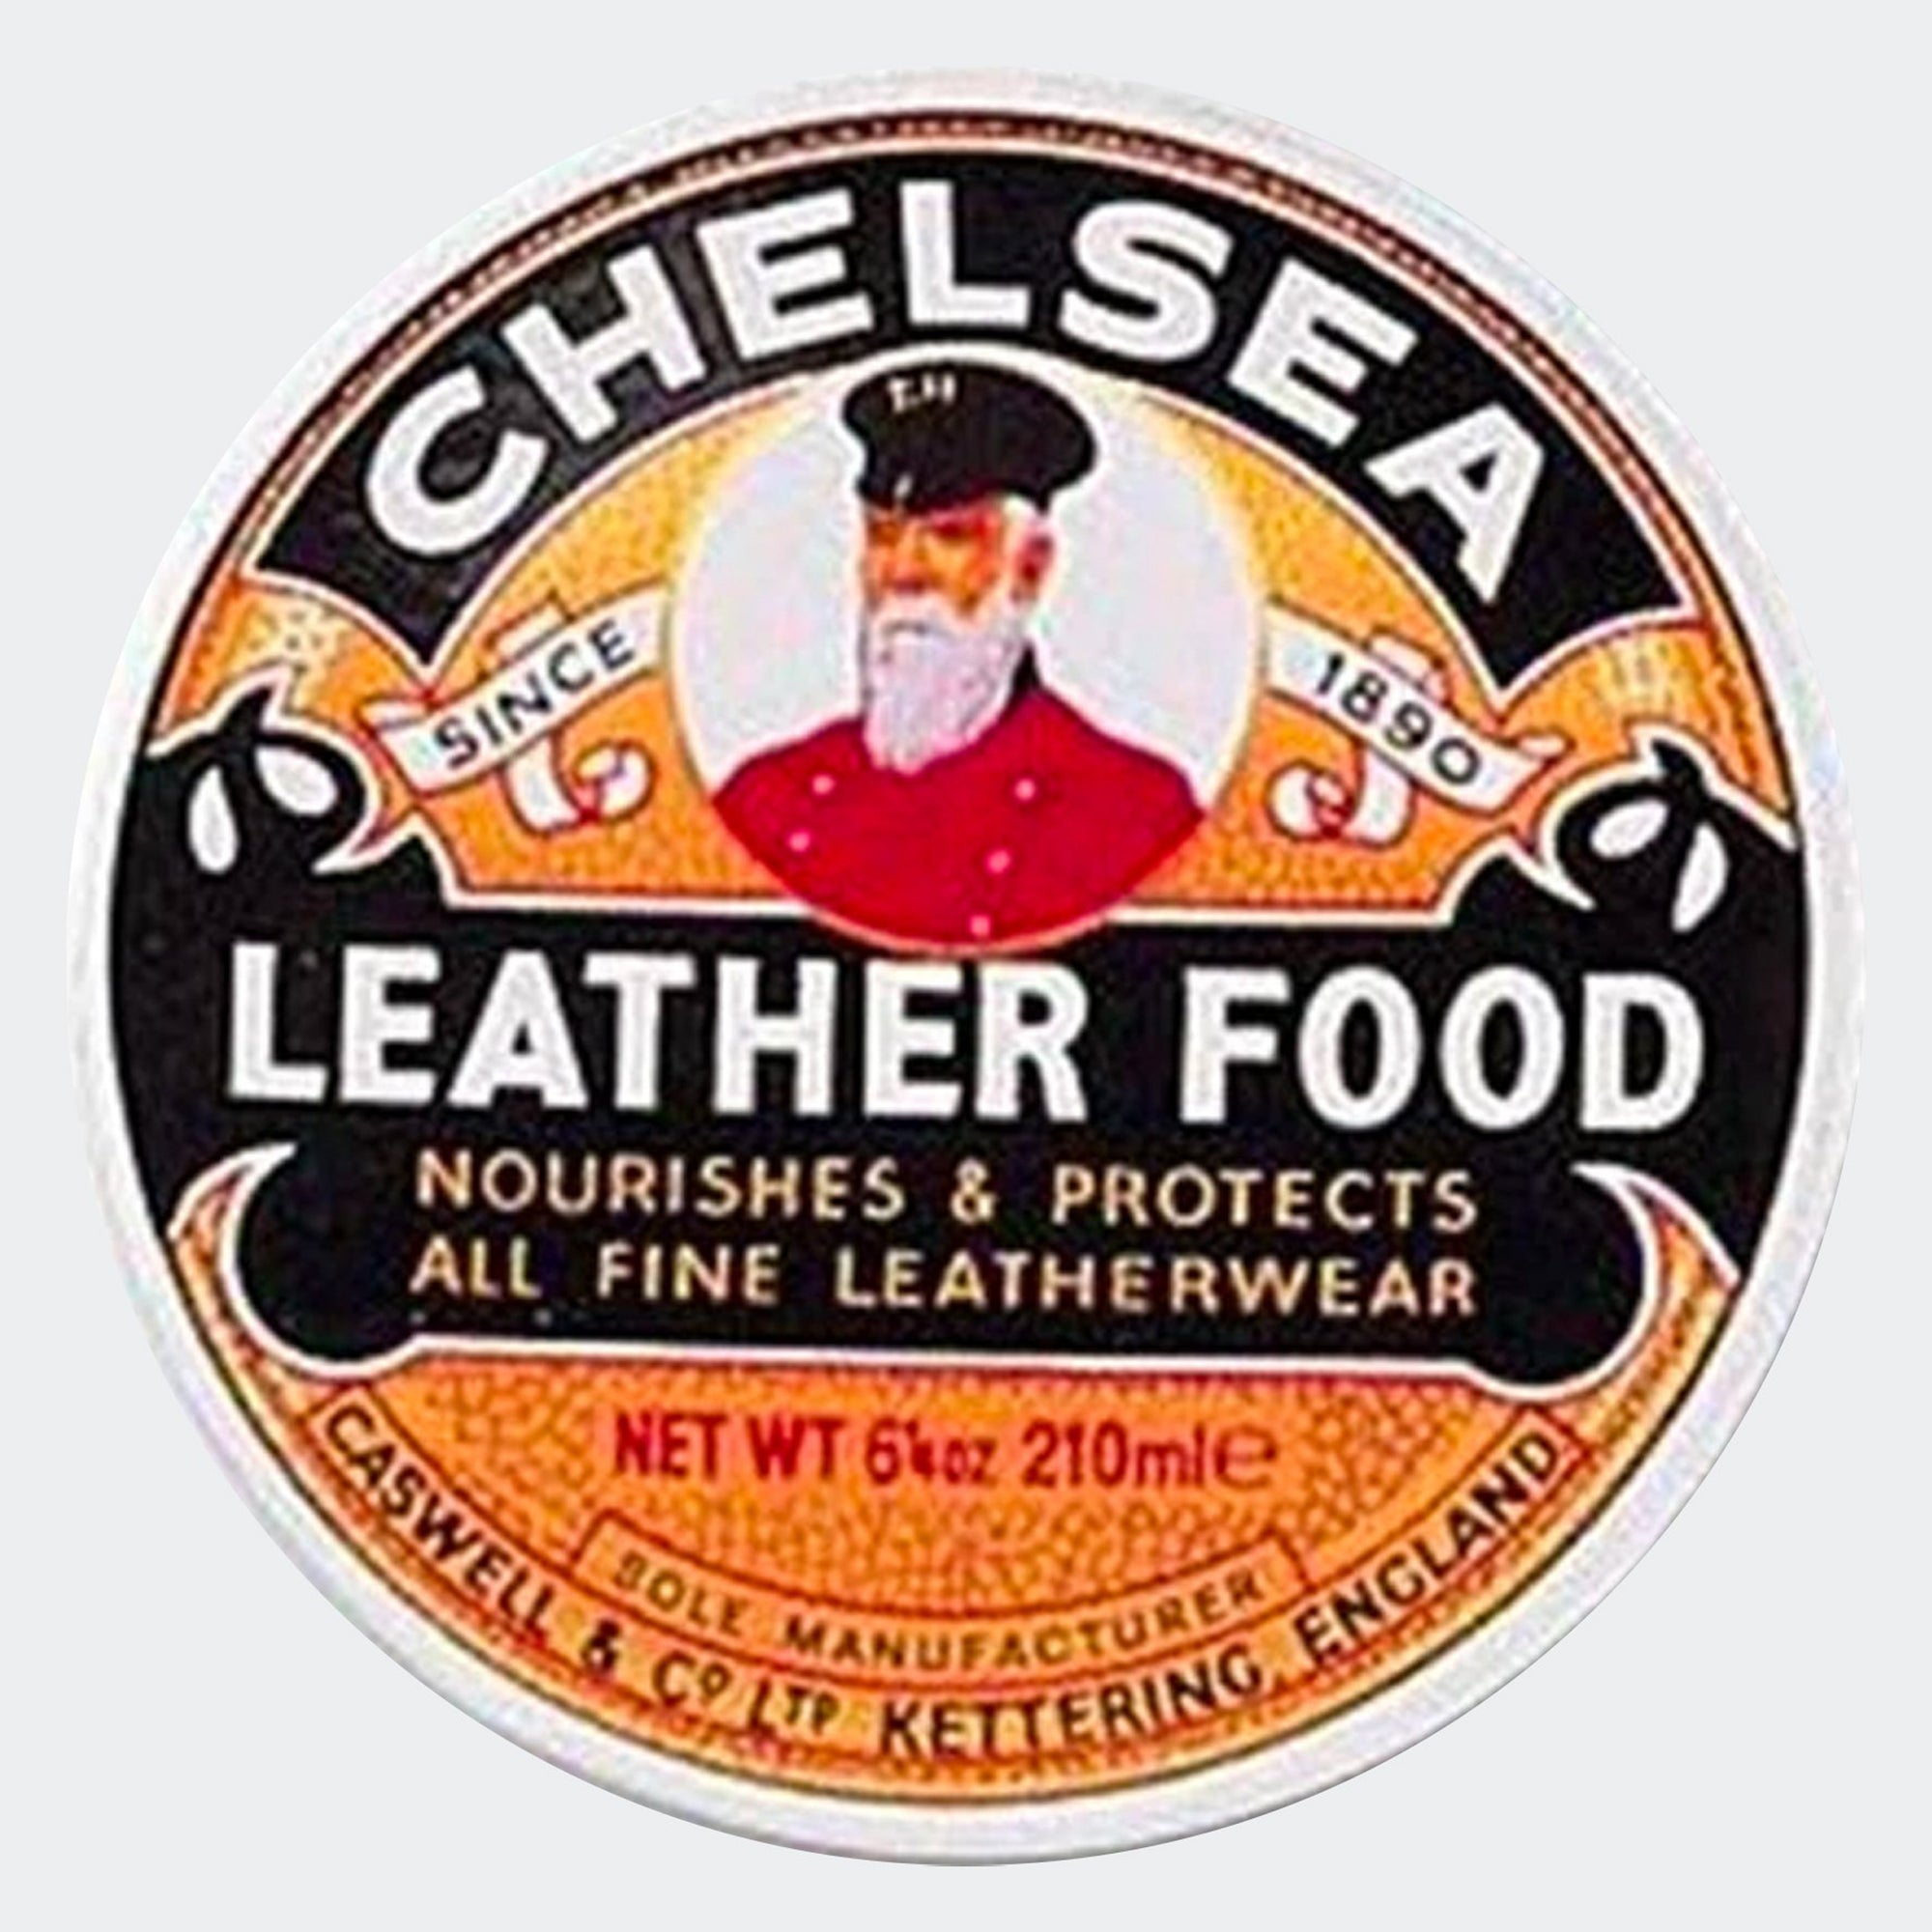 Chelsea Leather Food Clear